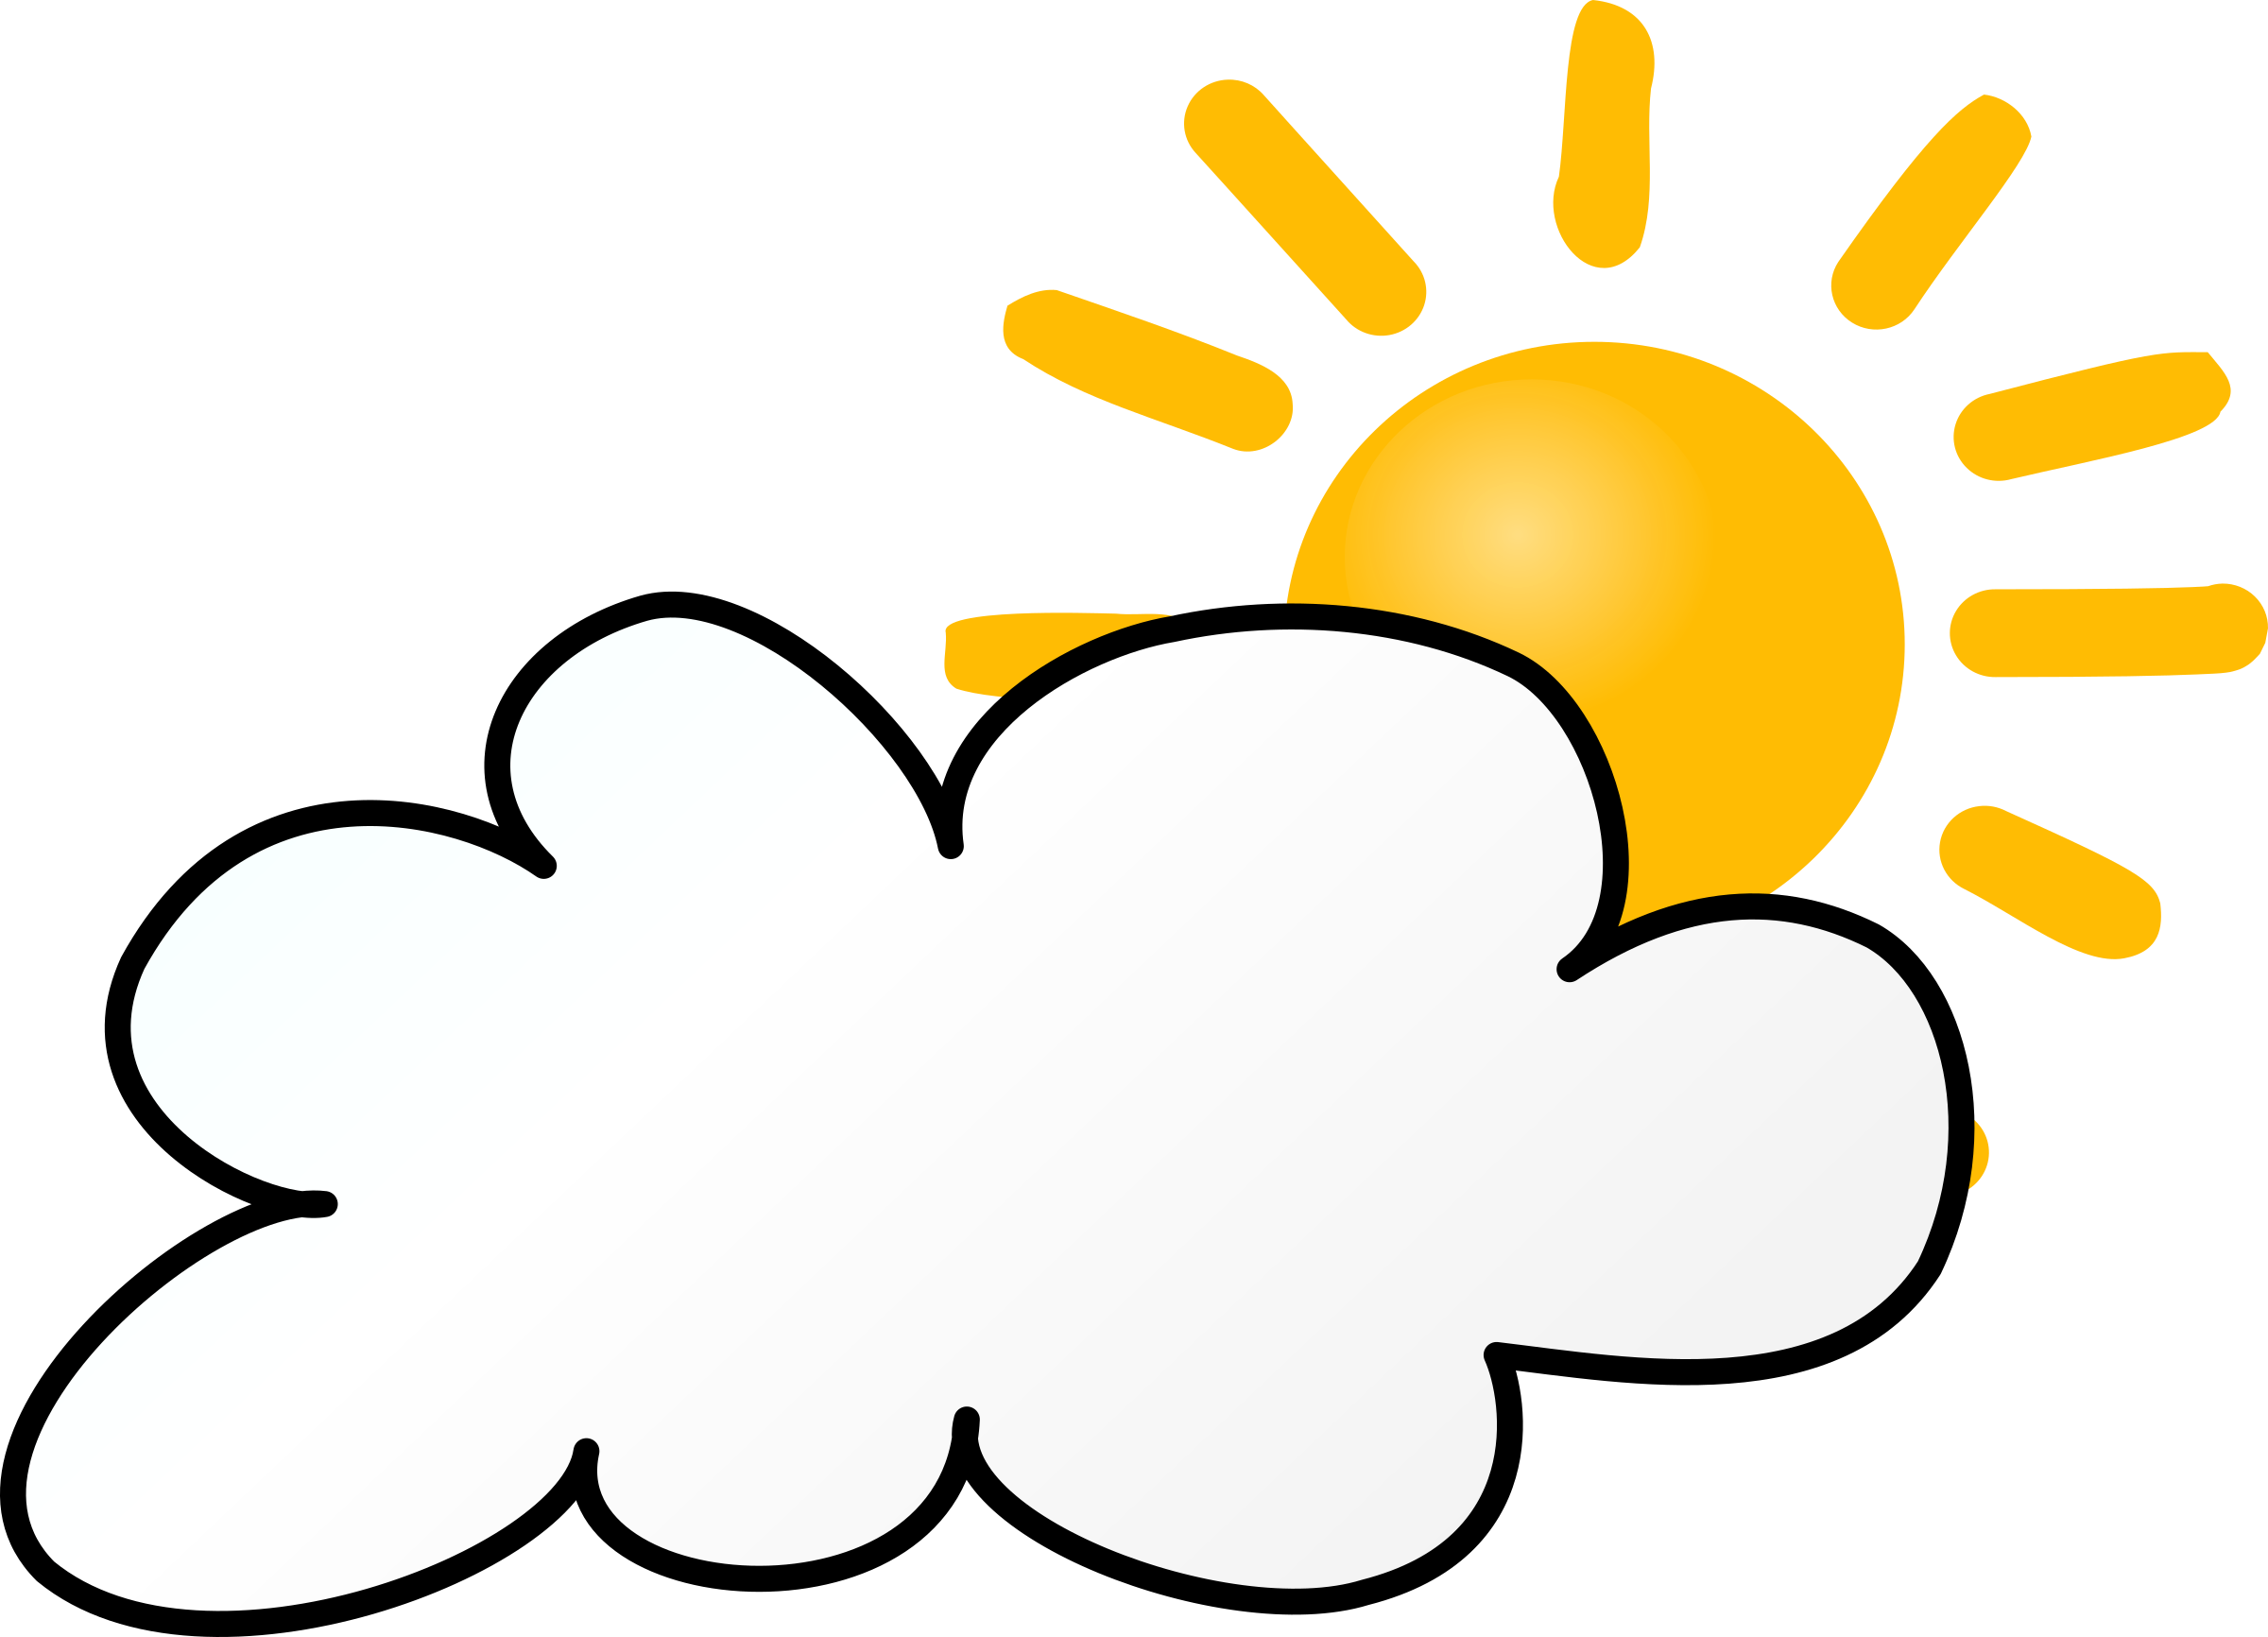 Clipart - Weather Symbols: Cloudy Day